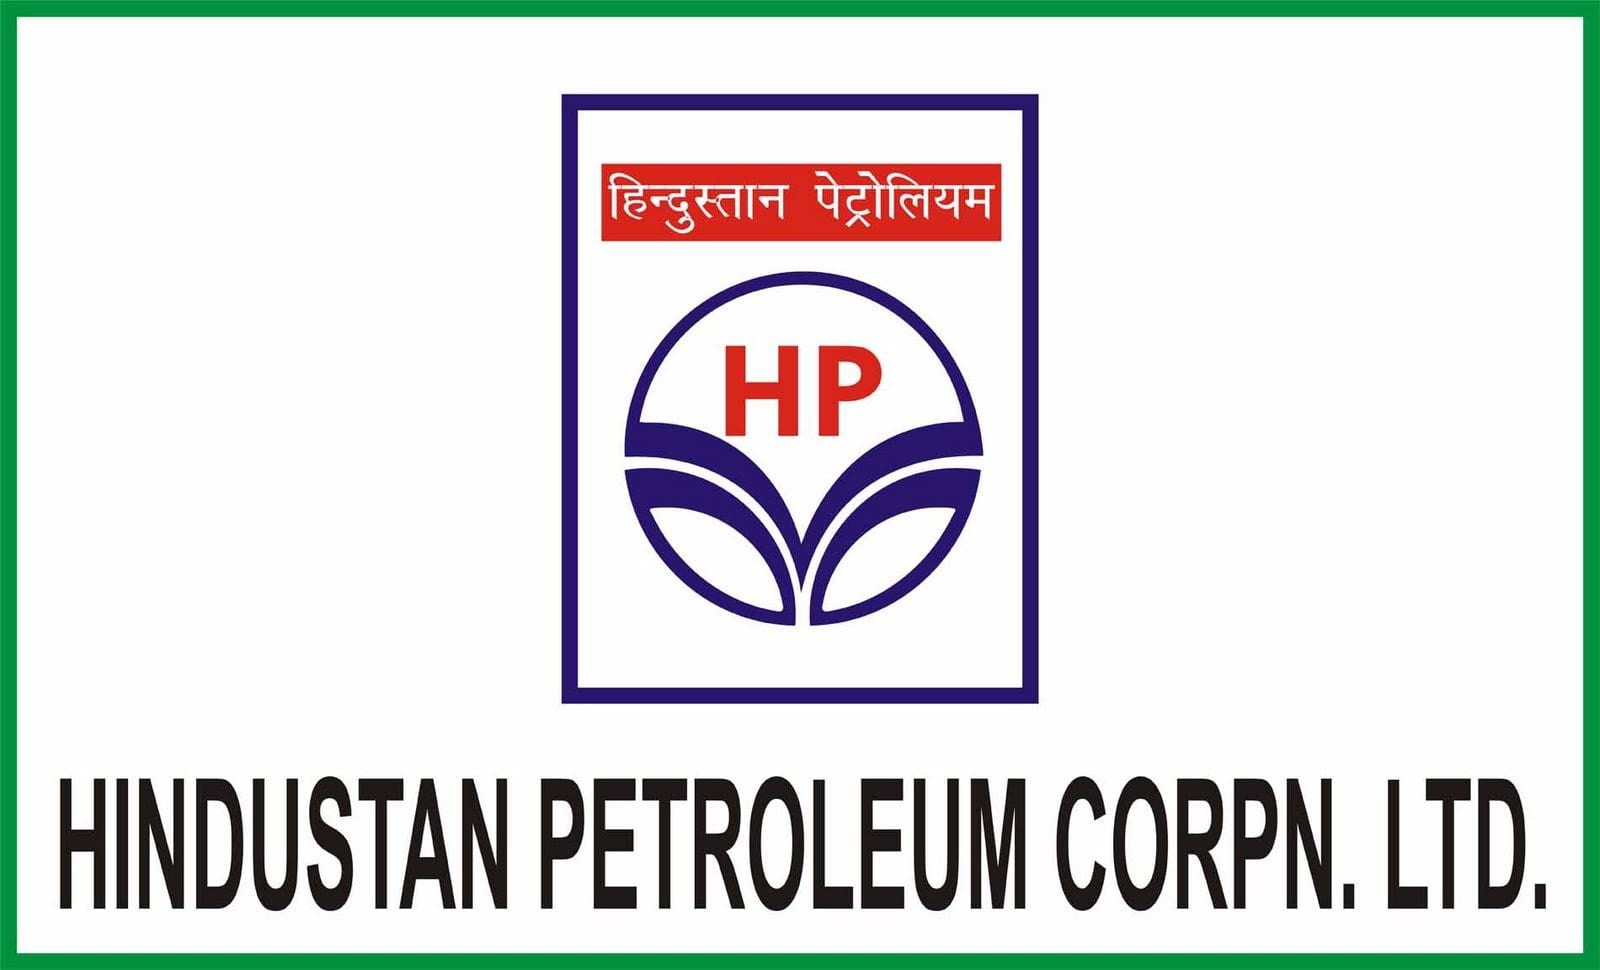 HPCL Buyback 2020